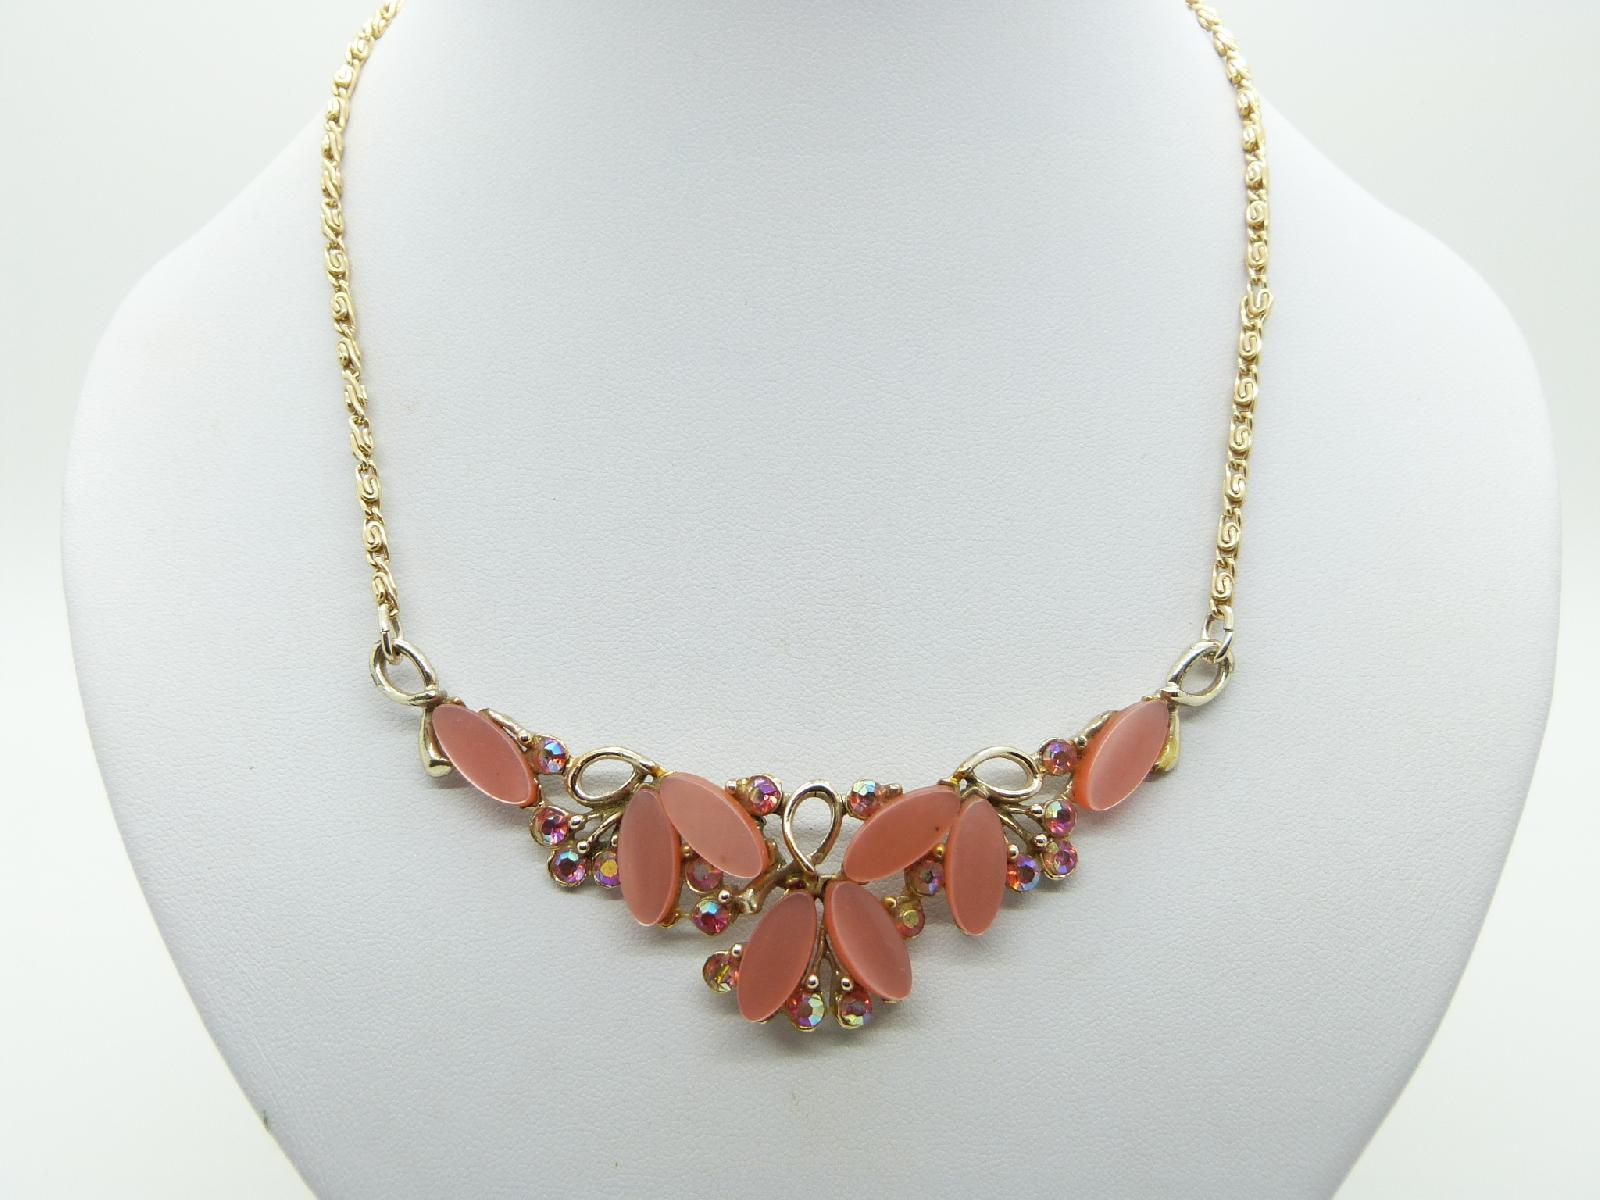 Vintage 50s Pretty Orange Lucite Moonglow and AB Diamante Necklace 44cms